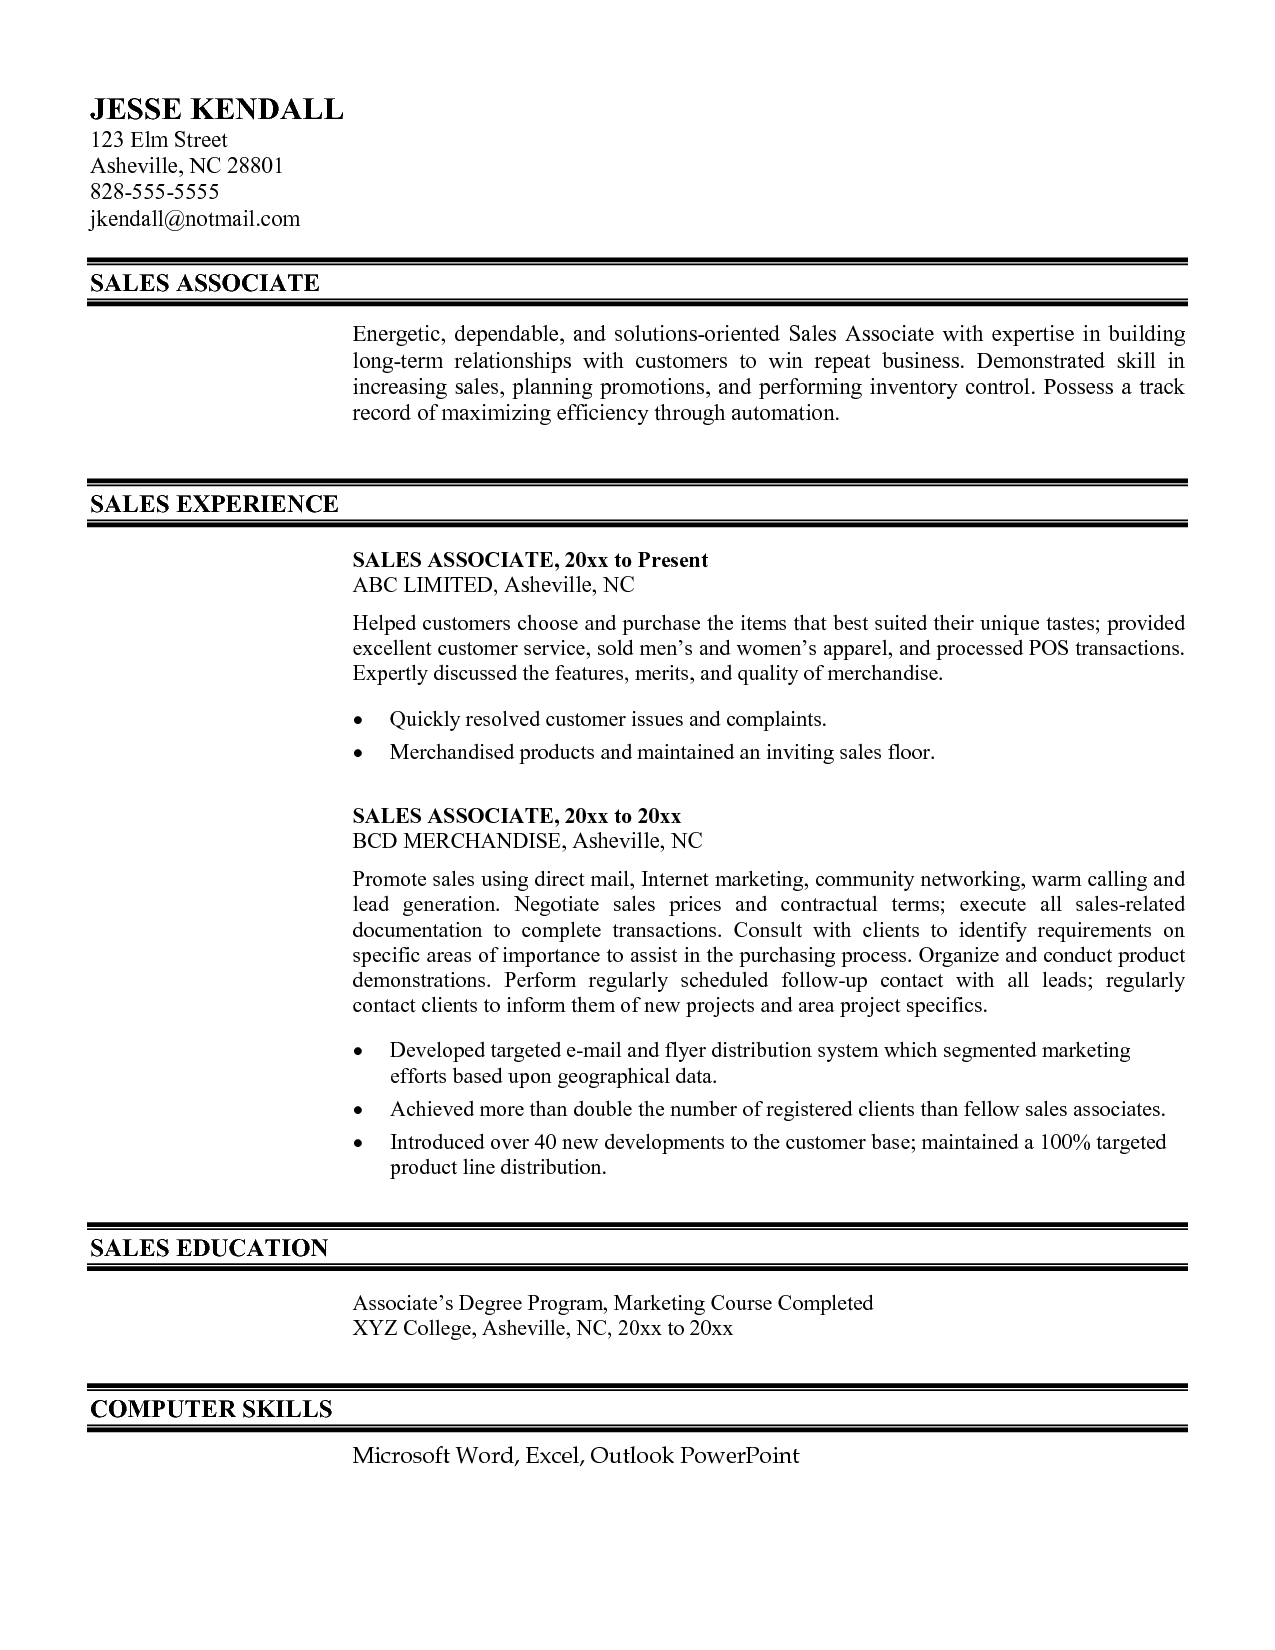 Attirant Example Of Sales Associate Resume Retail Sales Associate Sample Resume  Resume Cv Cover Letter.